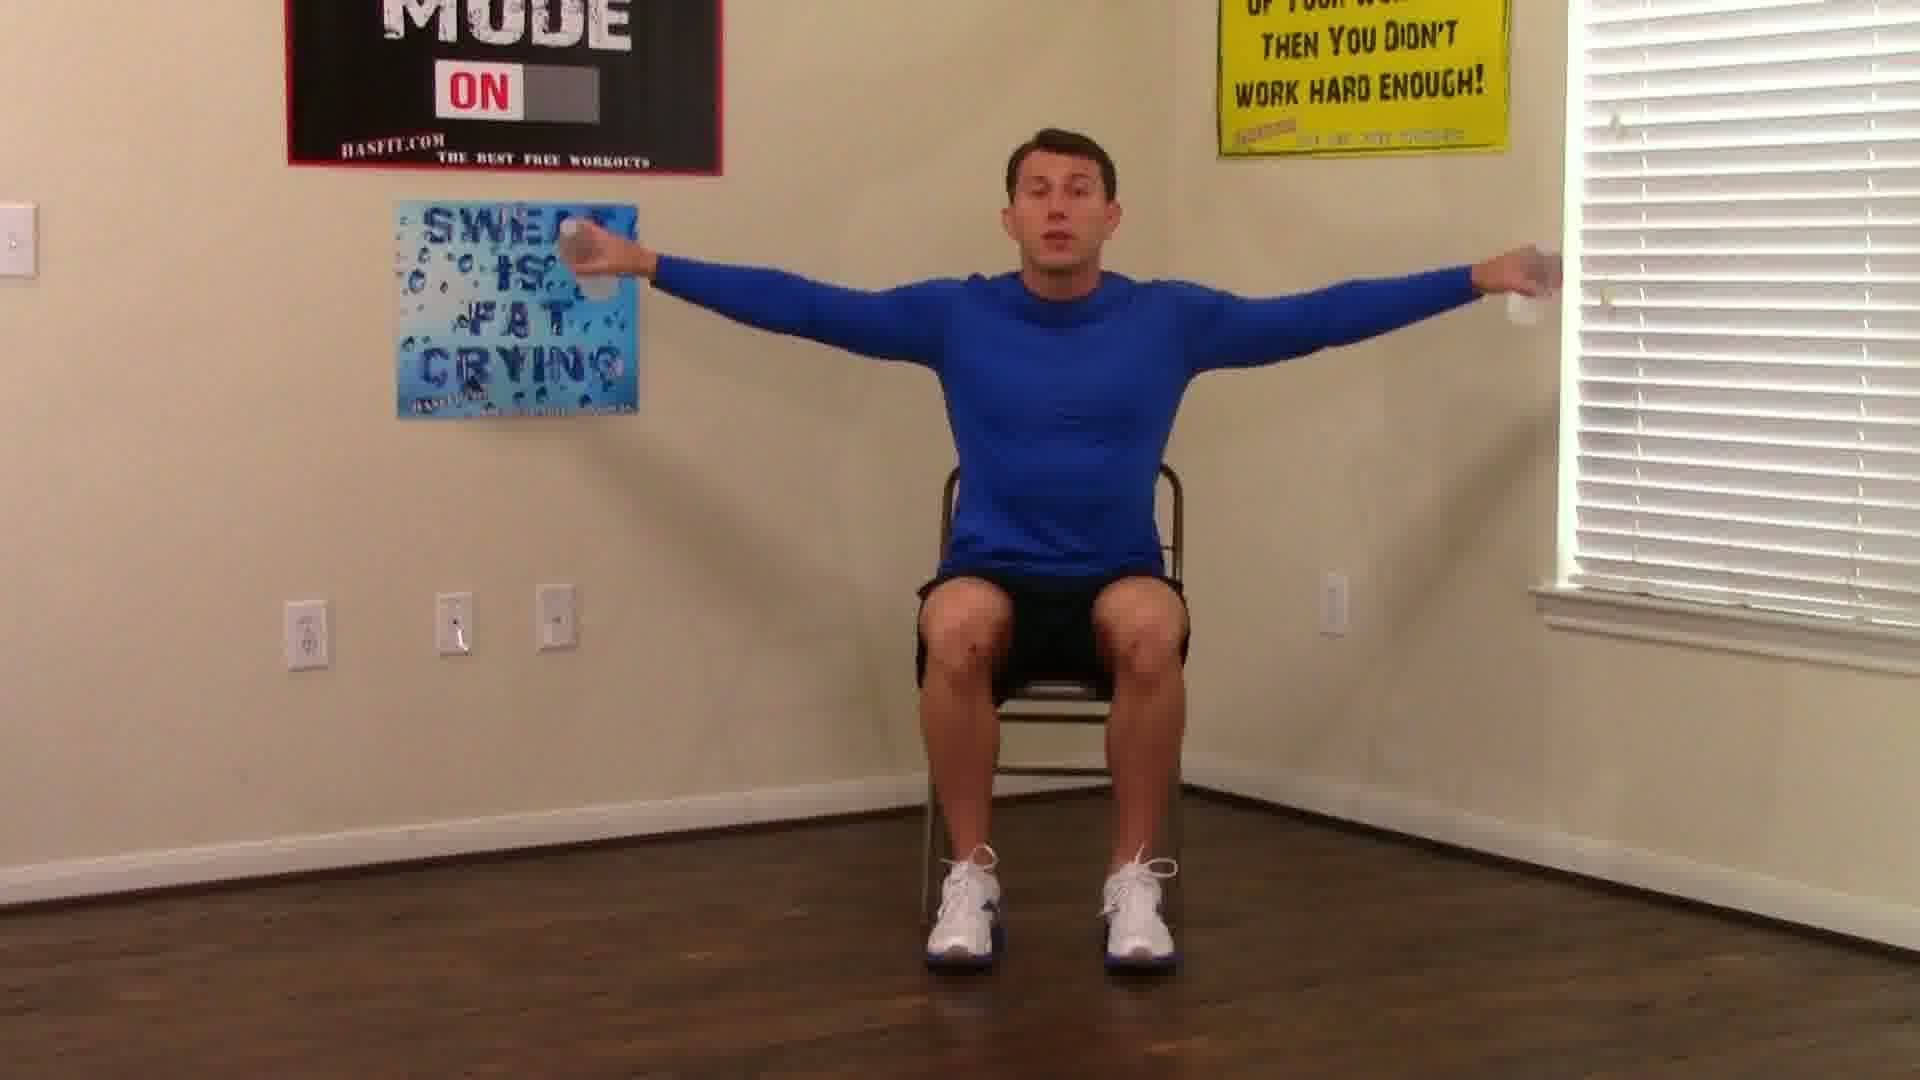 Chair Exercises For Seniors In Wheelchairs Comfy Wingback 10 Min Workout Hasfit Seated Exercise